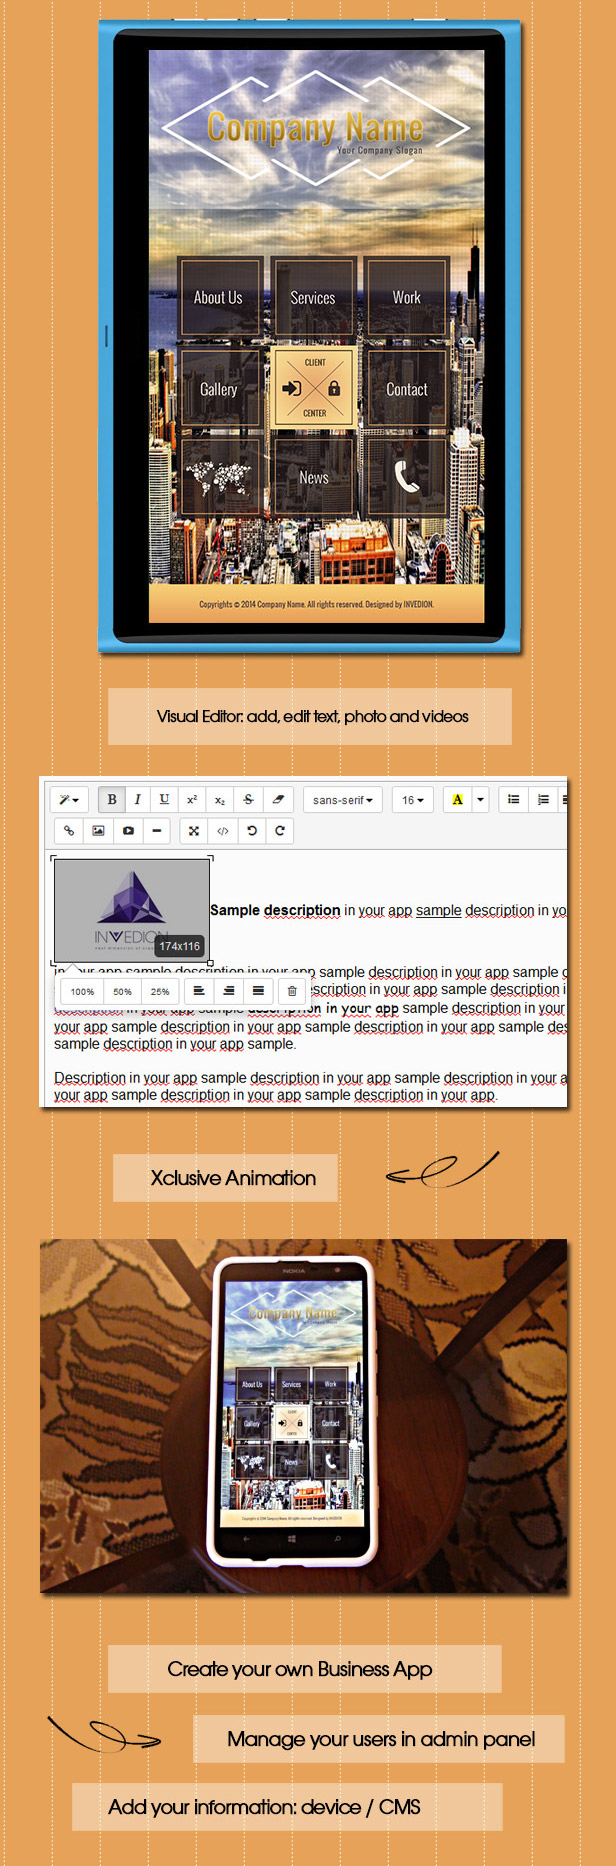 Business App With CMS - Windows Phone - 2